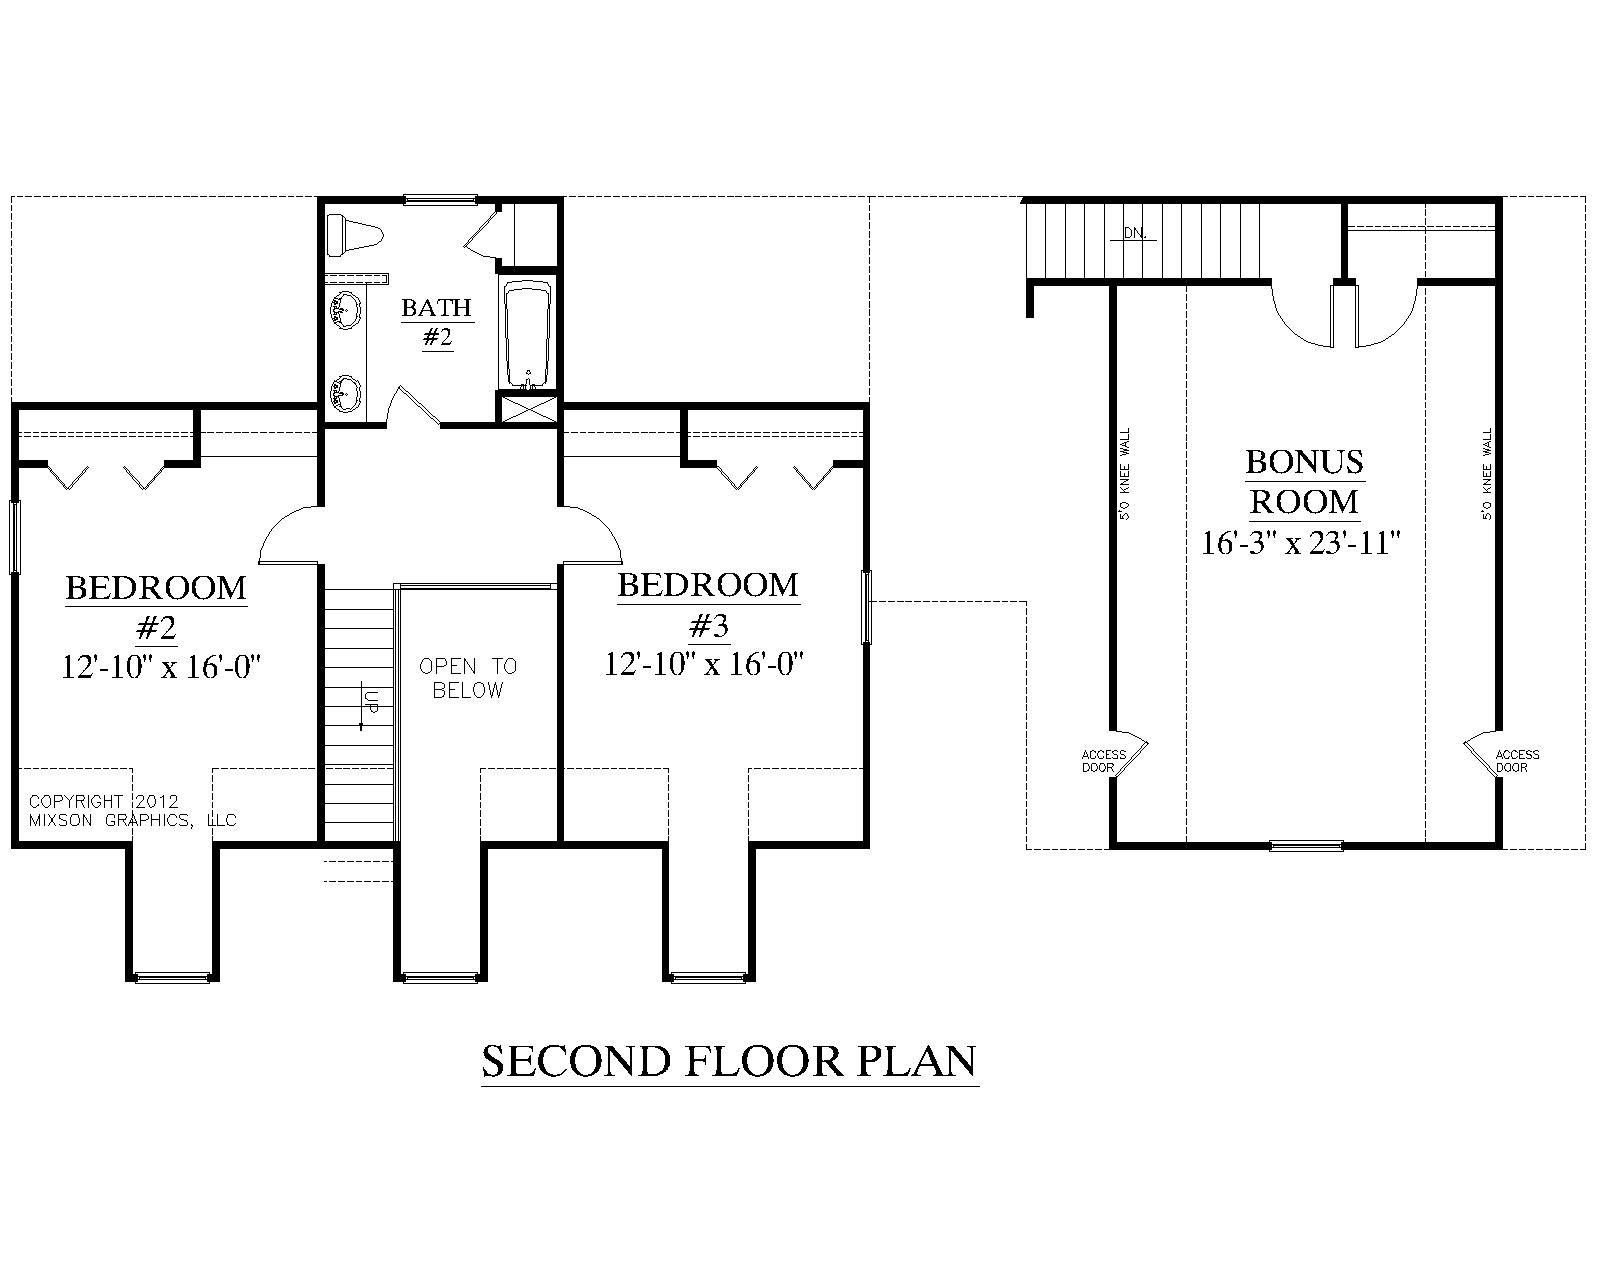 House Plan 2051 B Ashland first floor plan Colonial cottage 1 1